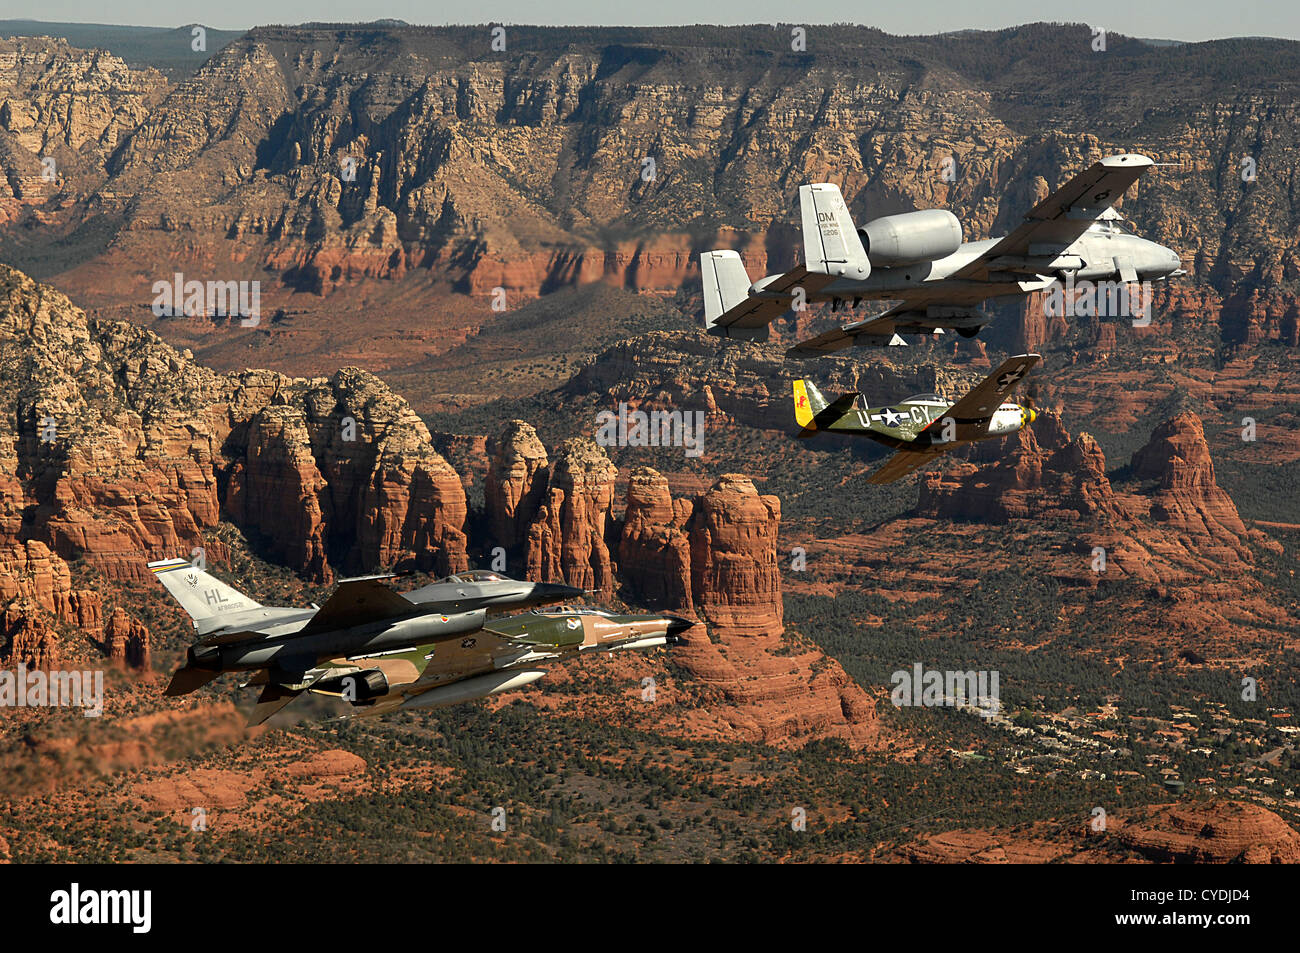 An Air Force heritage flight consisting of a P-51 Mustang, an F-4 Phantom, an A-10 Thunderbolt and an F-16 Fighting - Stock Image